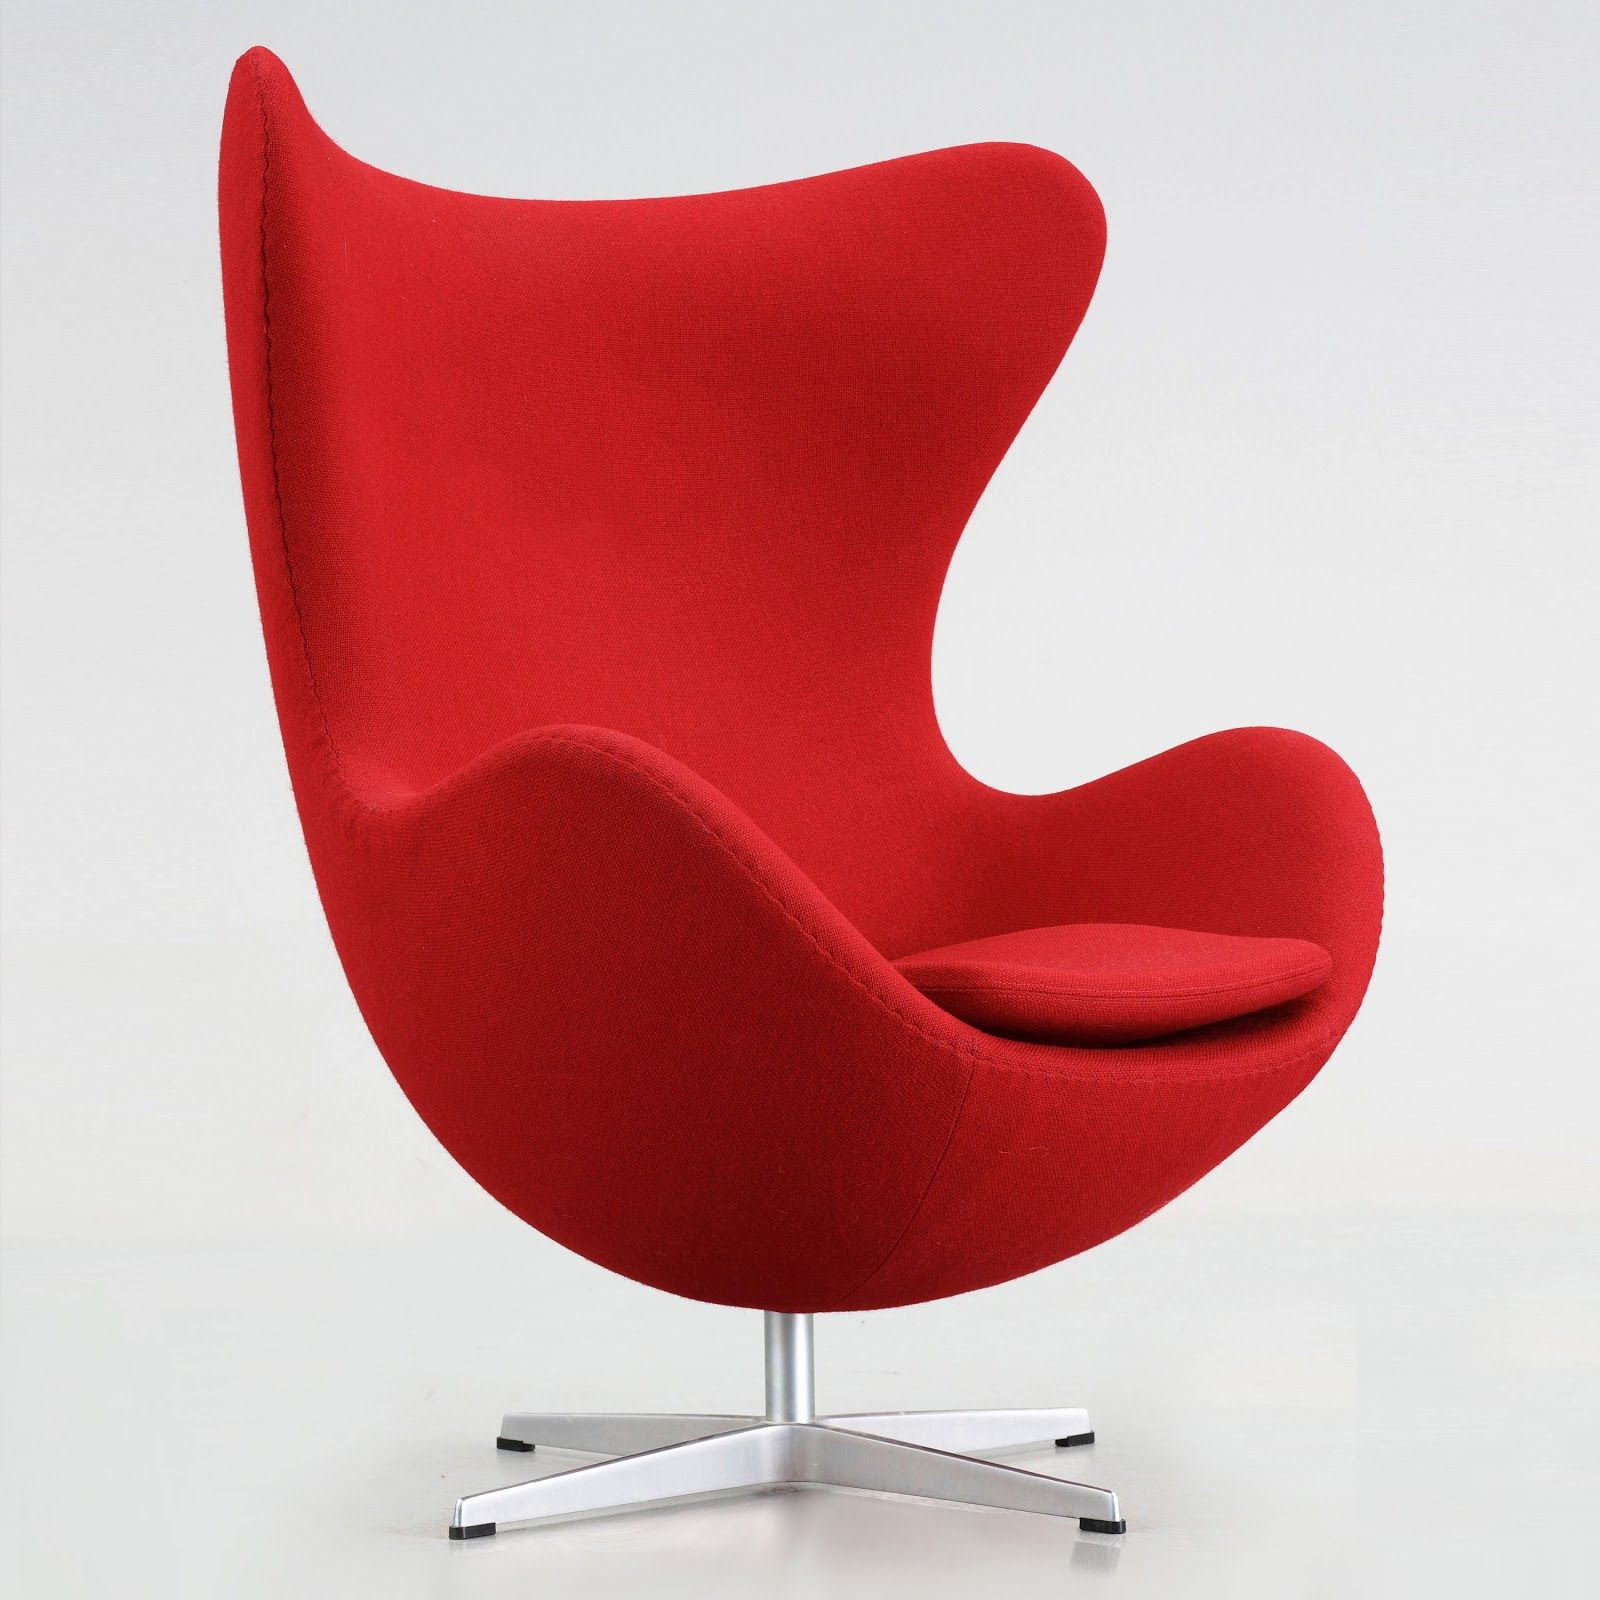 egg chair arne jacobsen (9)